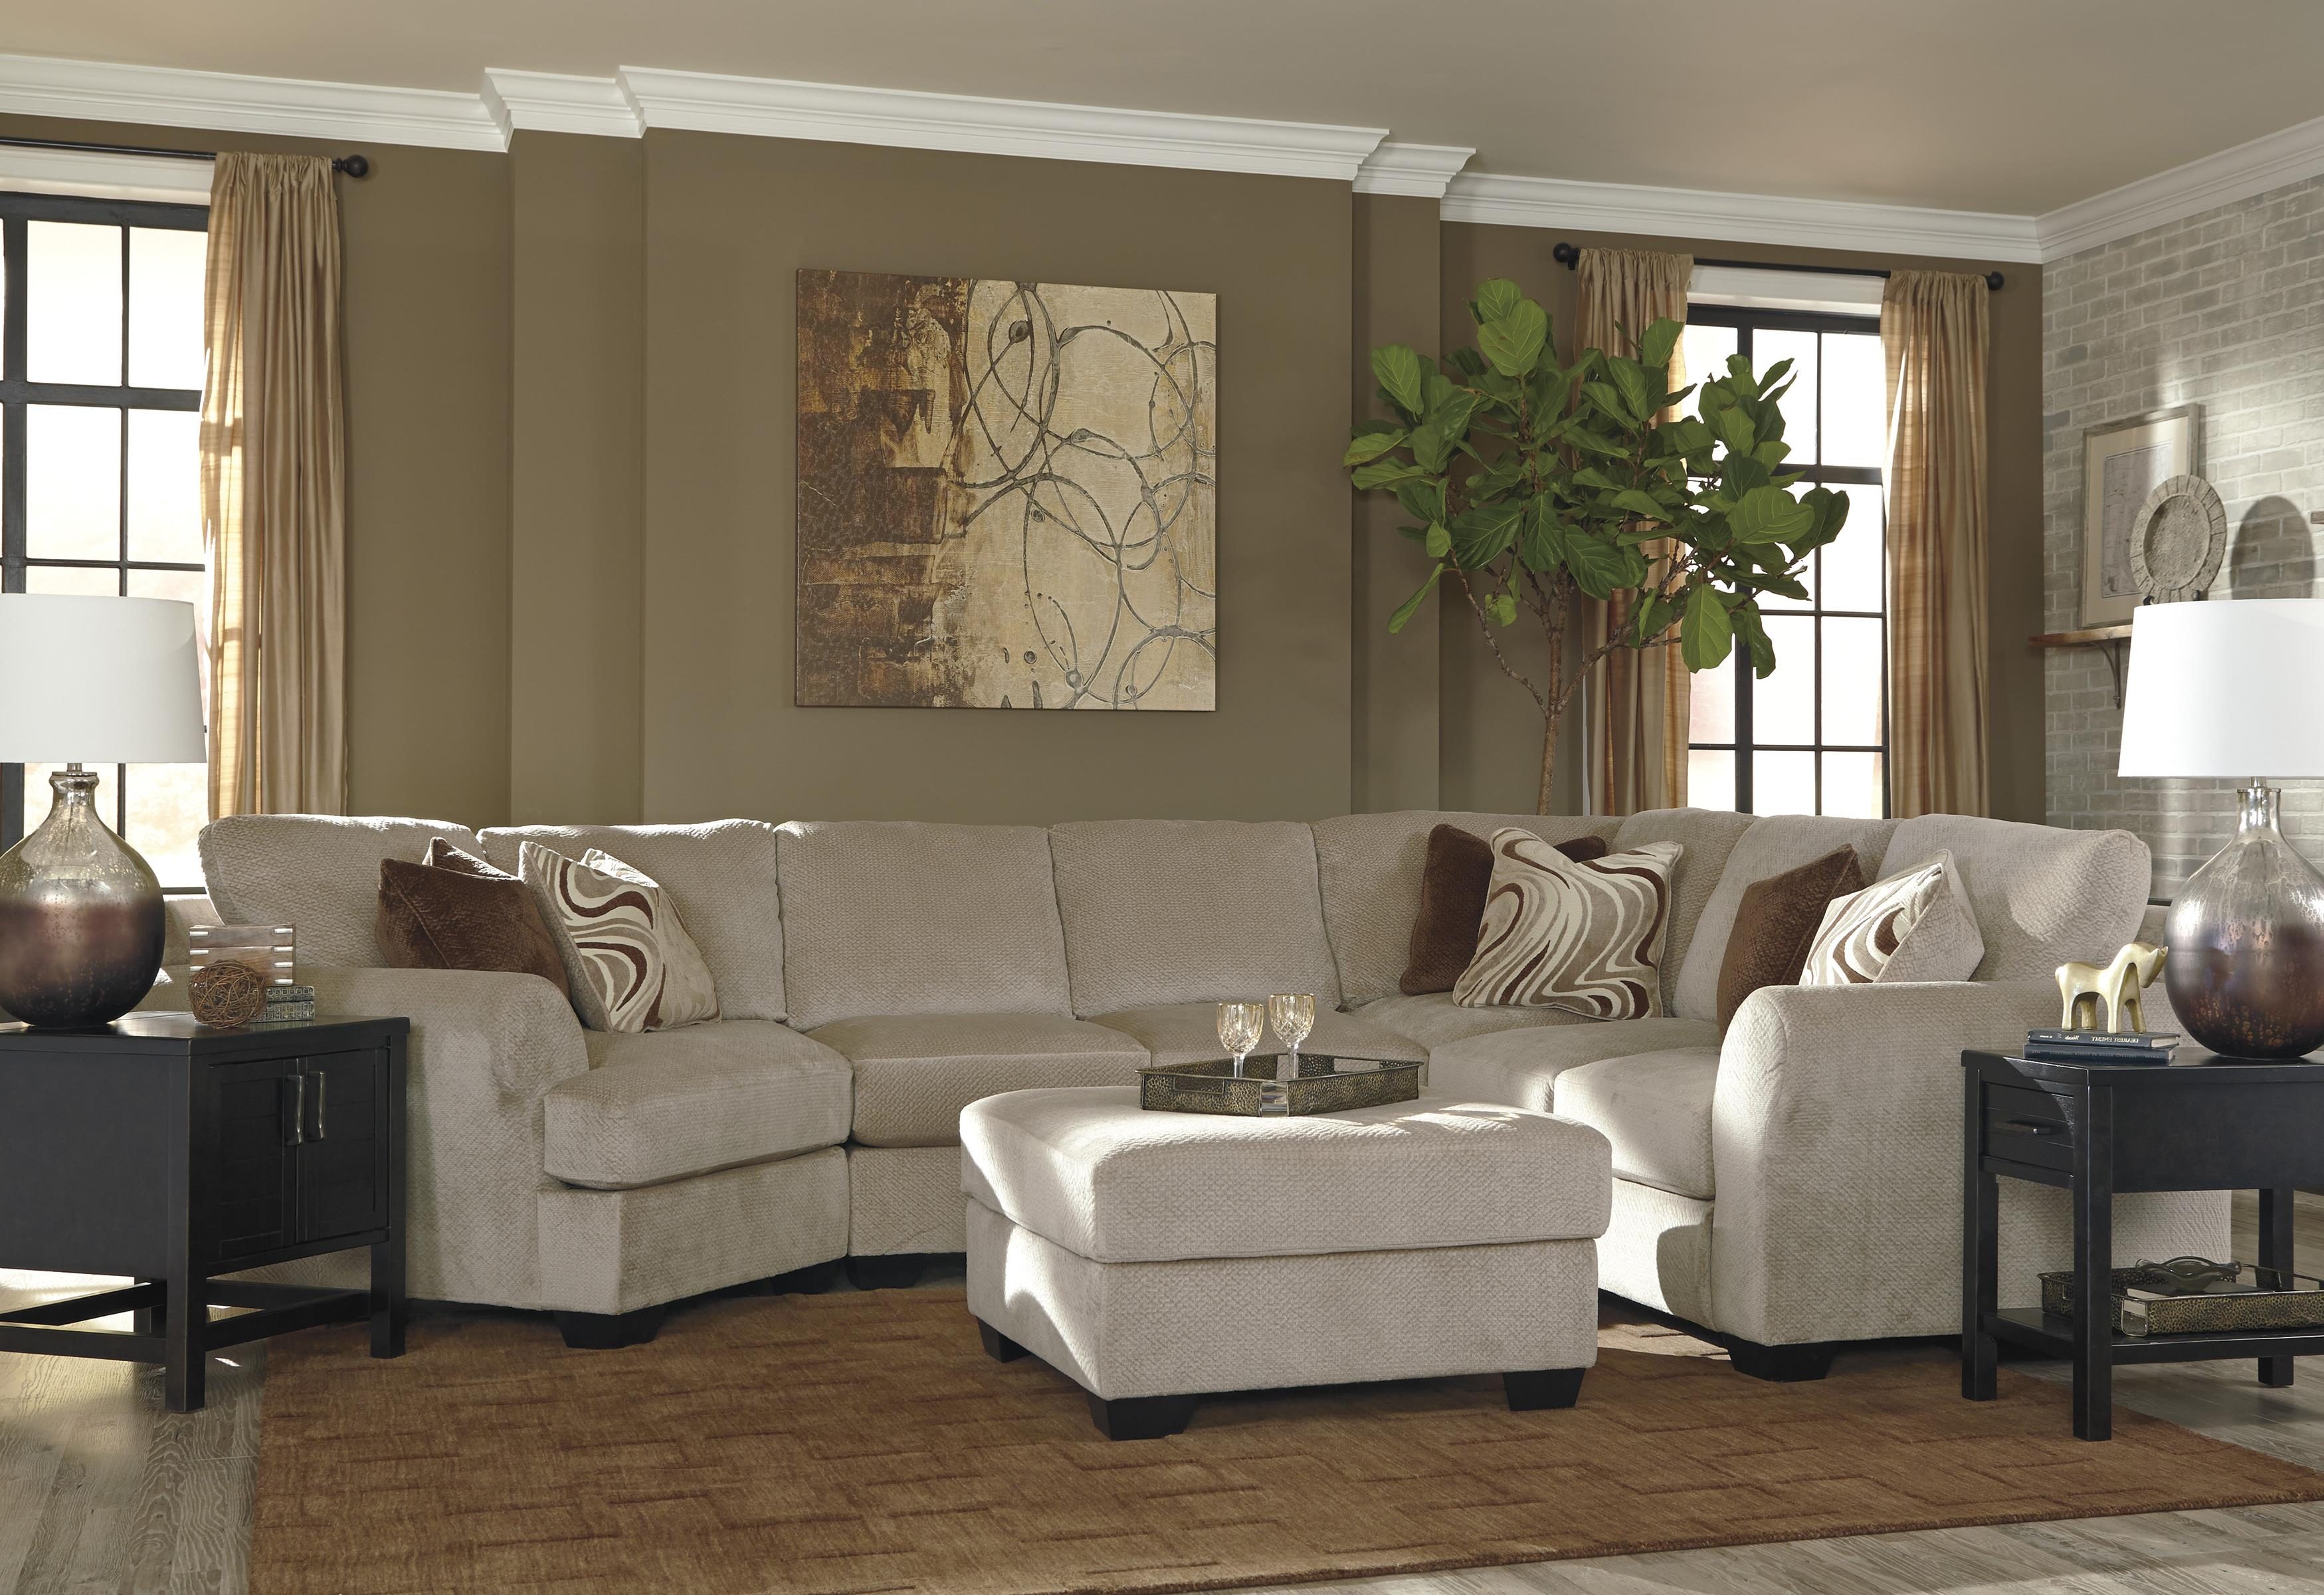 Benchcraft Hazes Stationary Living Room Group - Item Number: 65701 Living Room Group 4